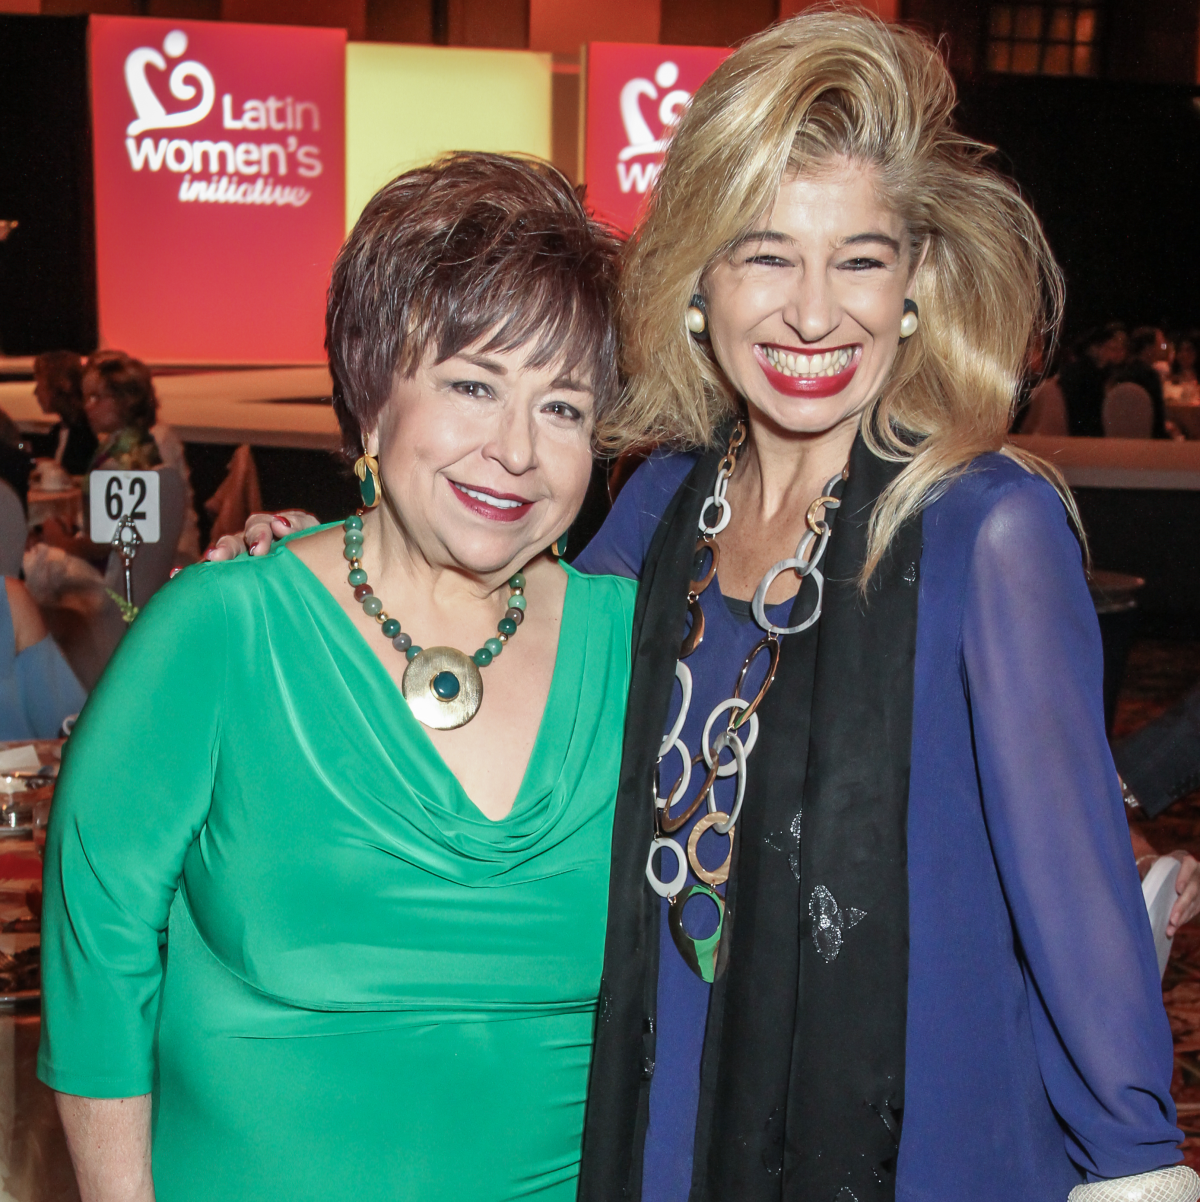 Latin Women's Initiative Luncheon, Trini Mendenhall and Sofia Adrogue